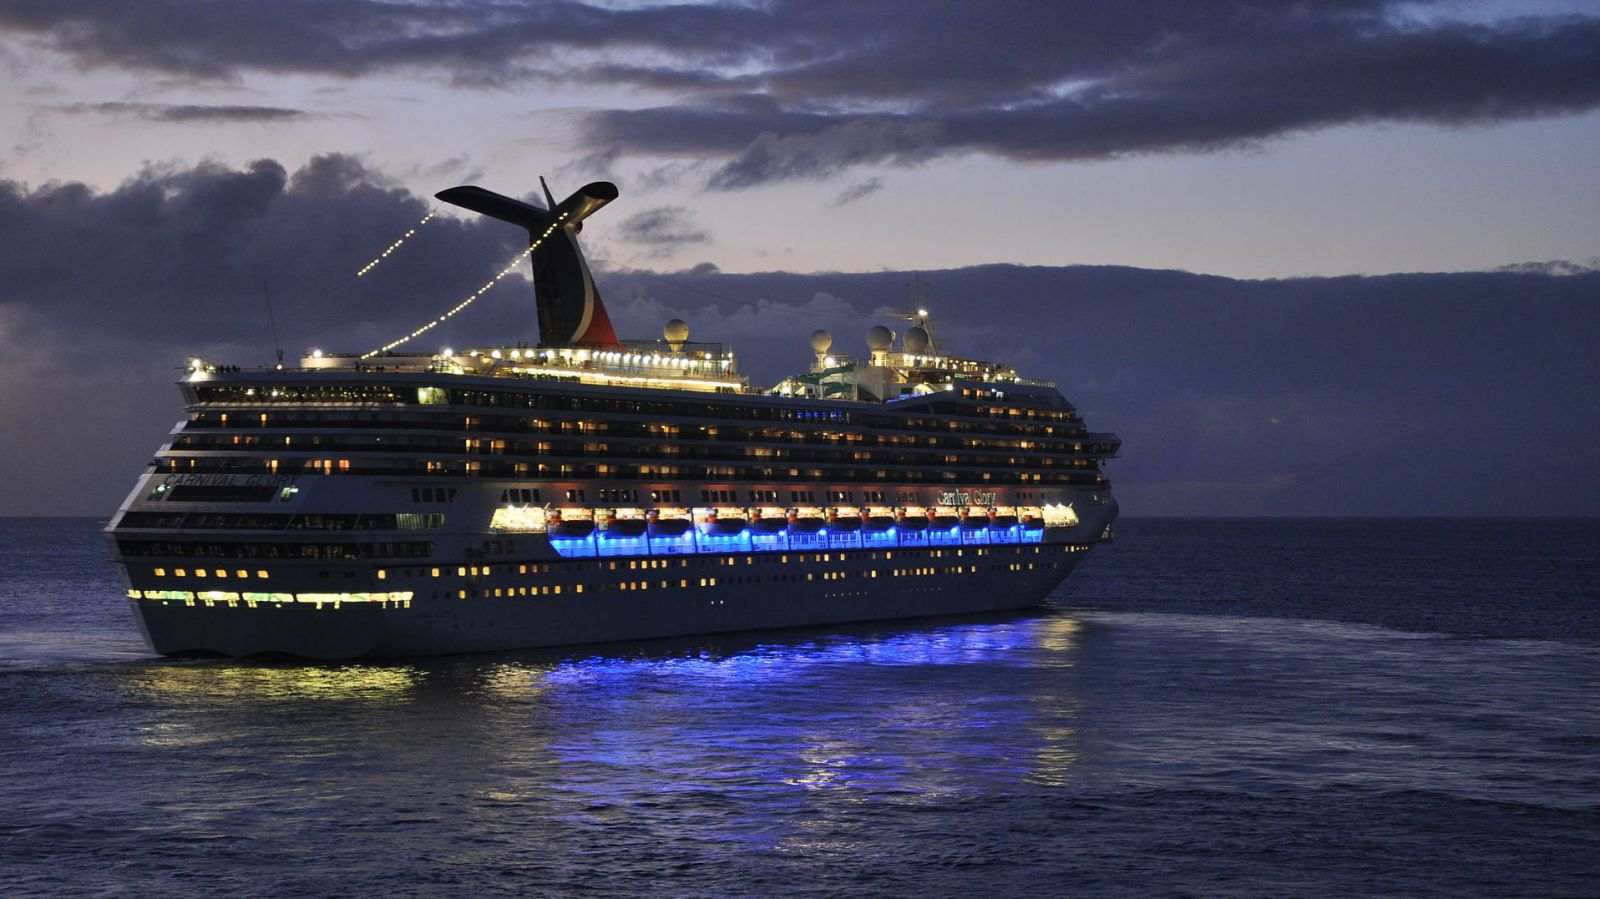 Eight-Year-Old Girl Dies in Cruise Ship Fall